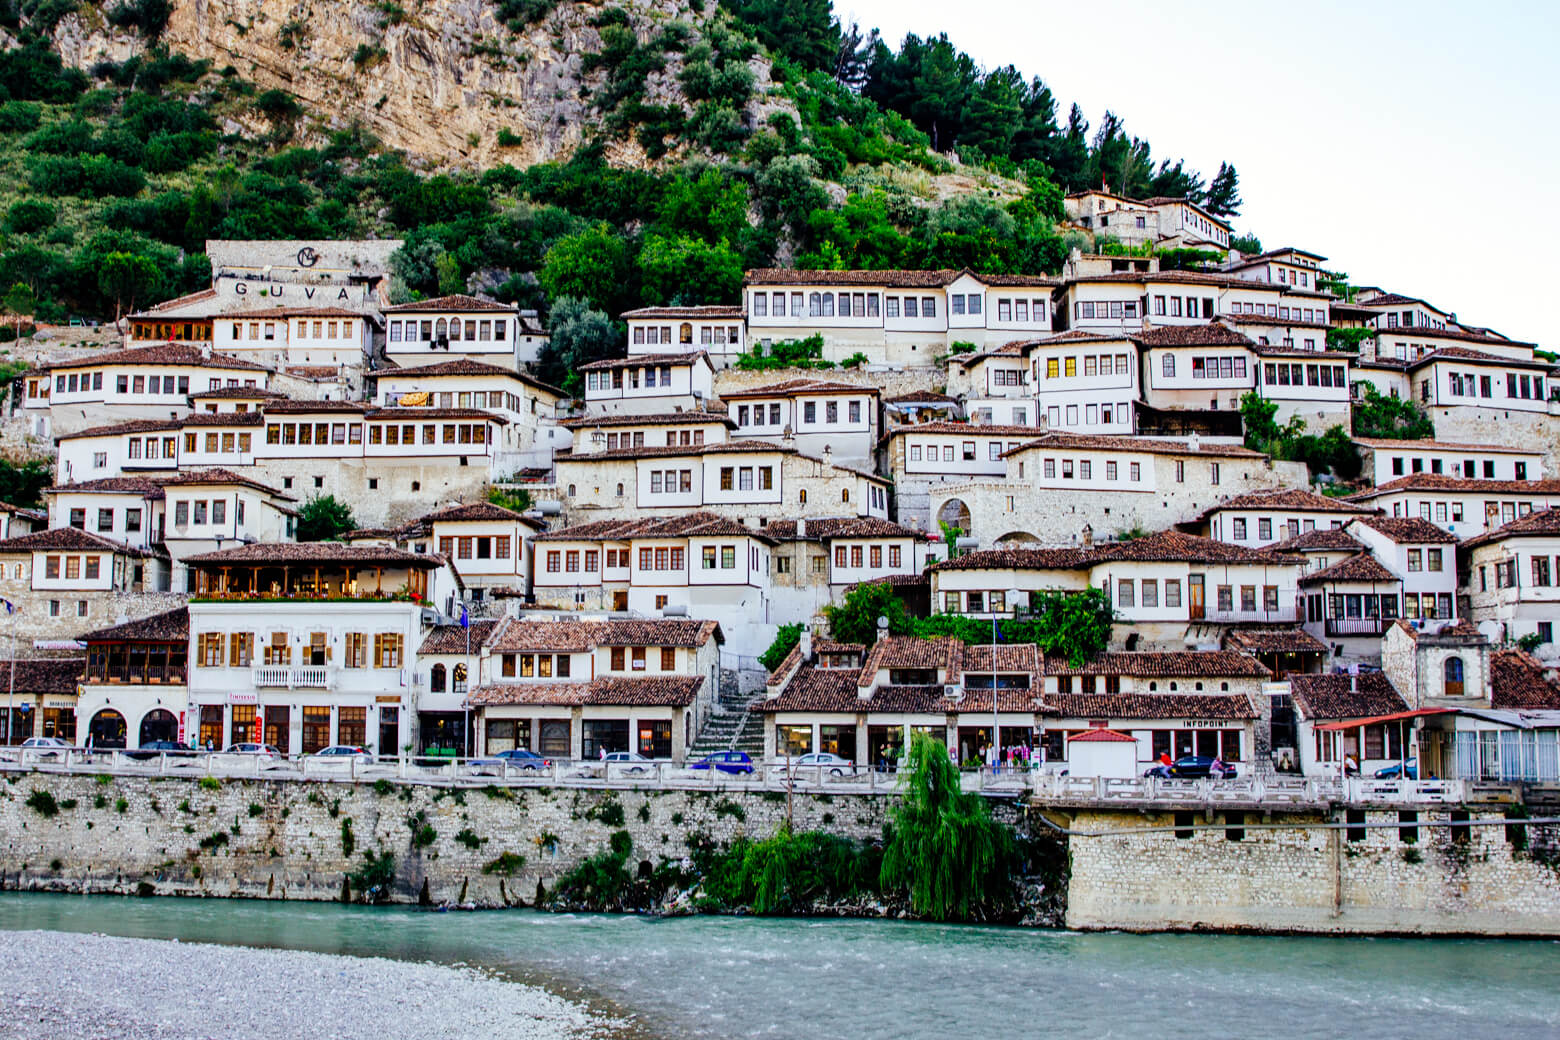 Berat's Ottoman Old Town in Mangalem